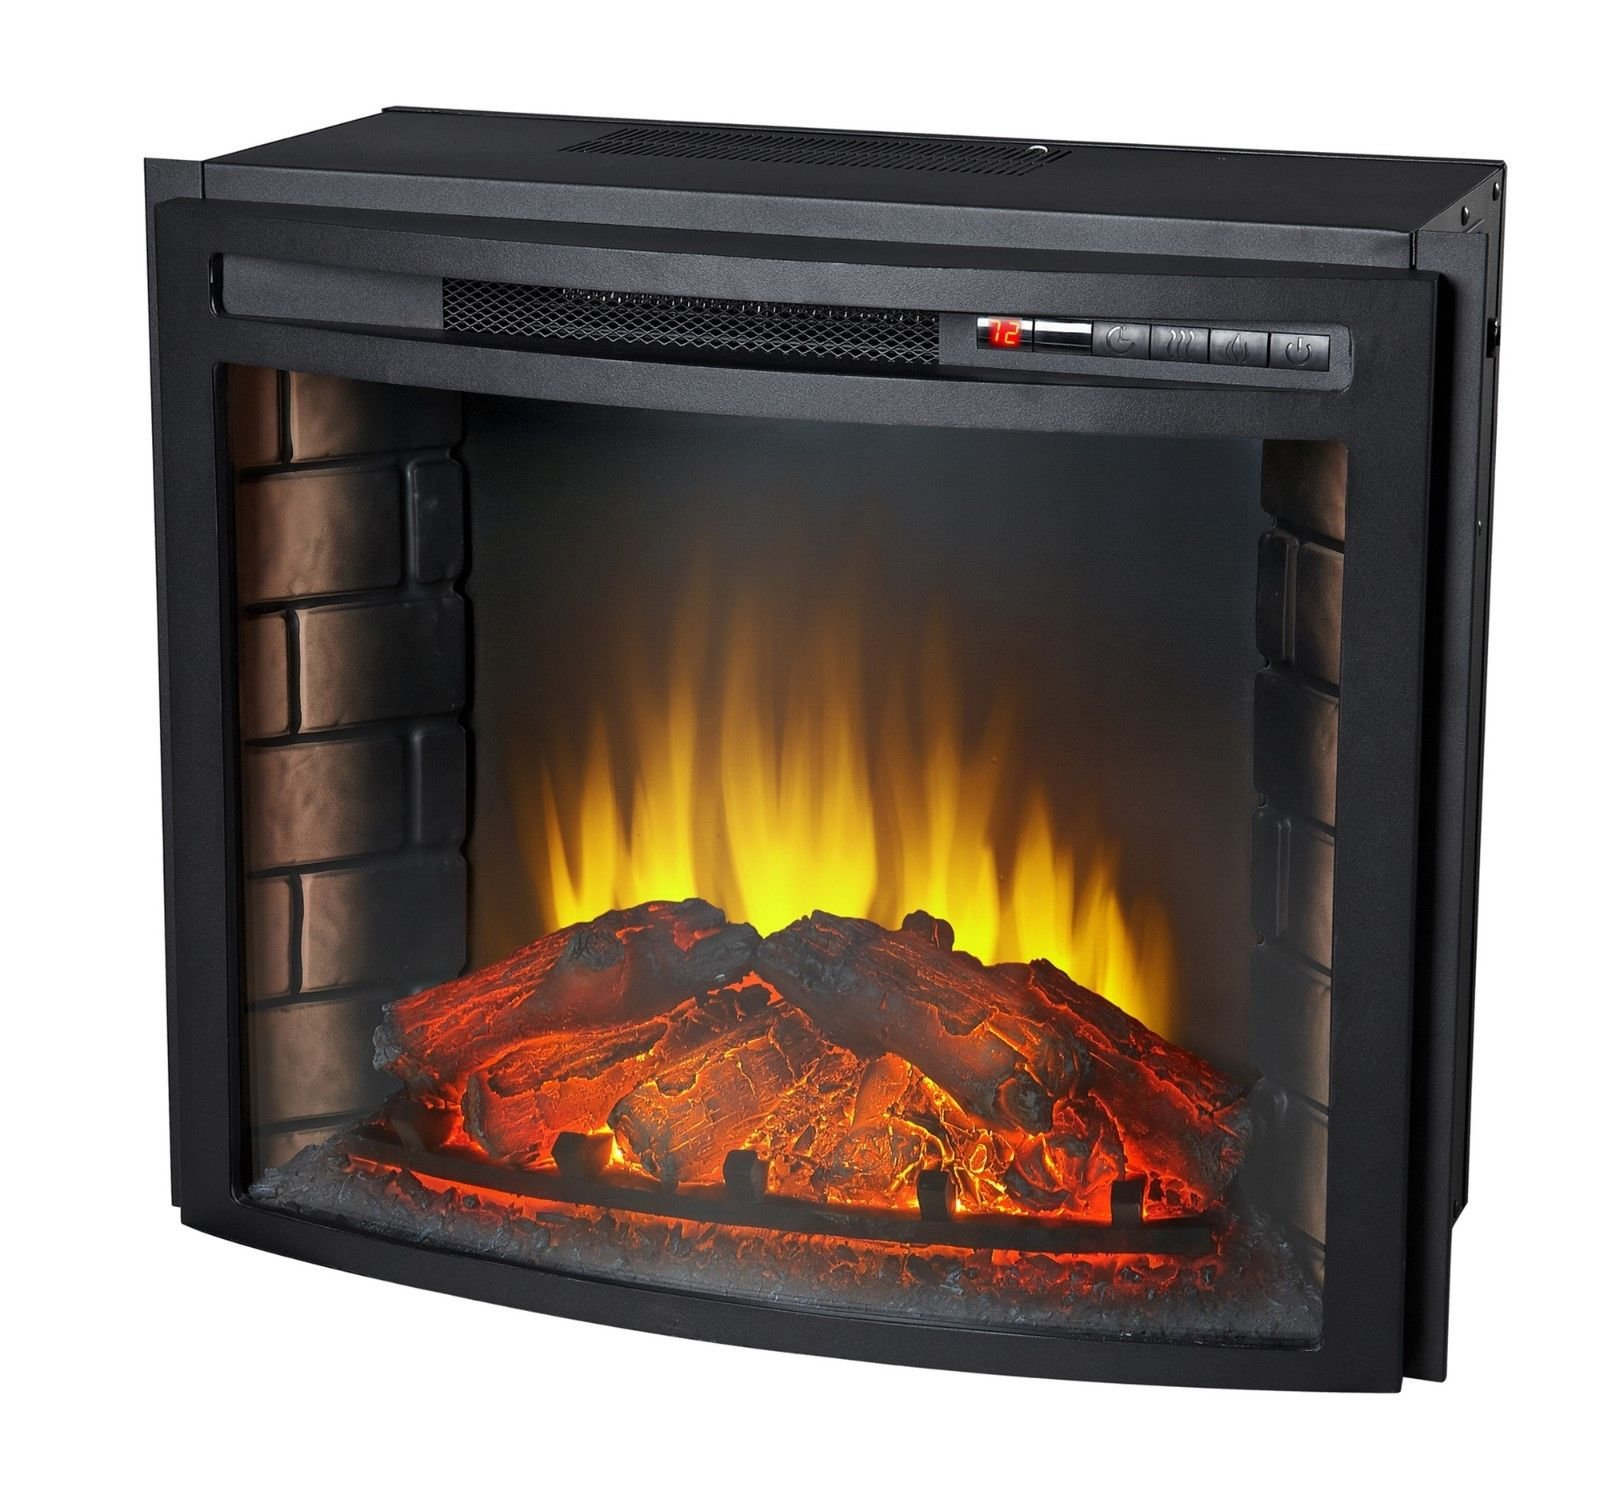 24'' Curved Electric Fireplace Insert - Firebox with Heater chimney Vent free + FREE E-Book